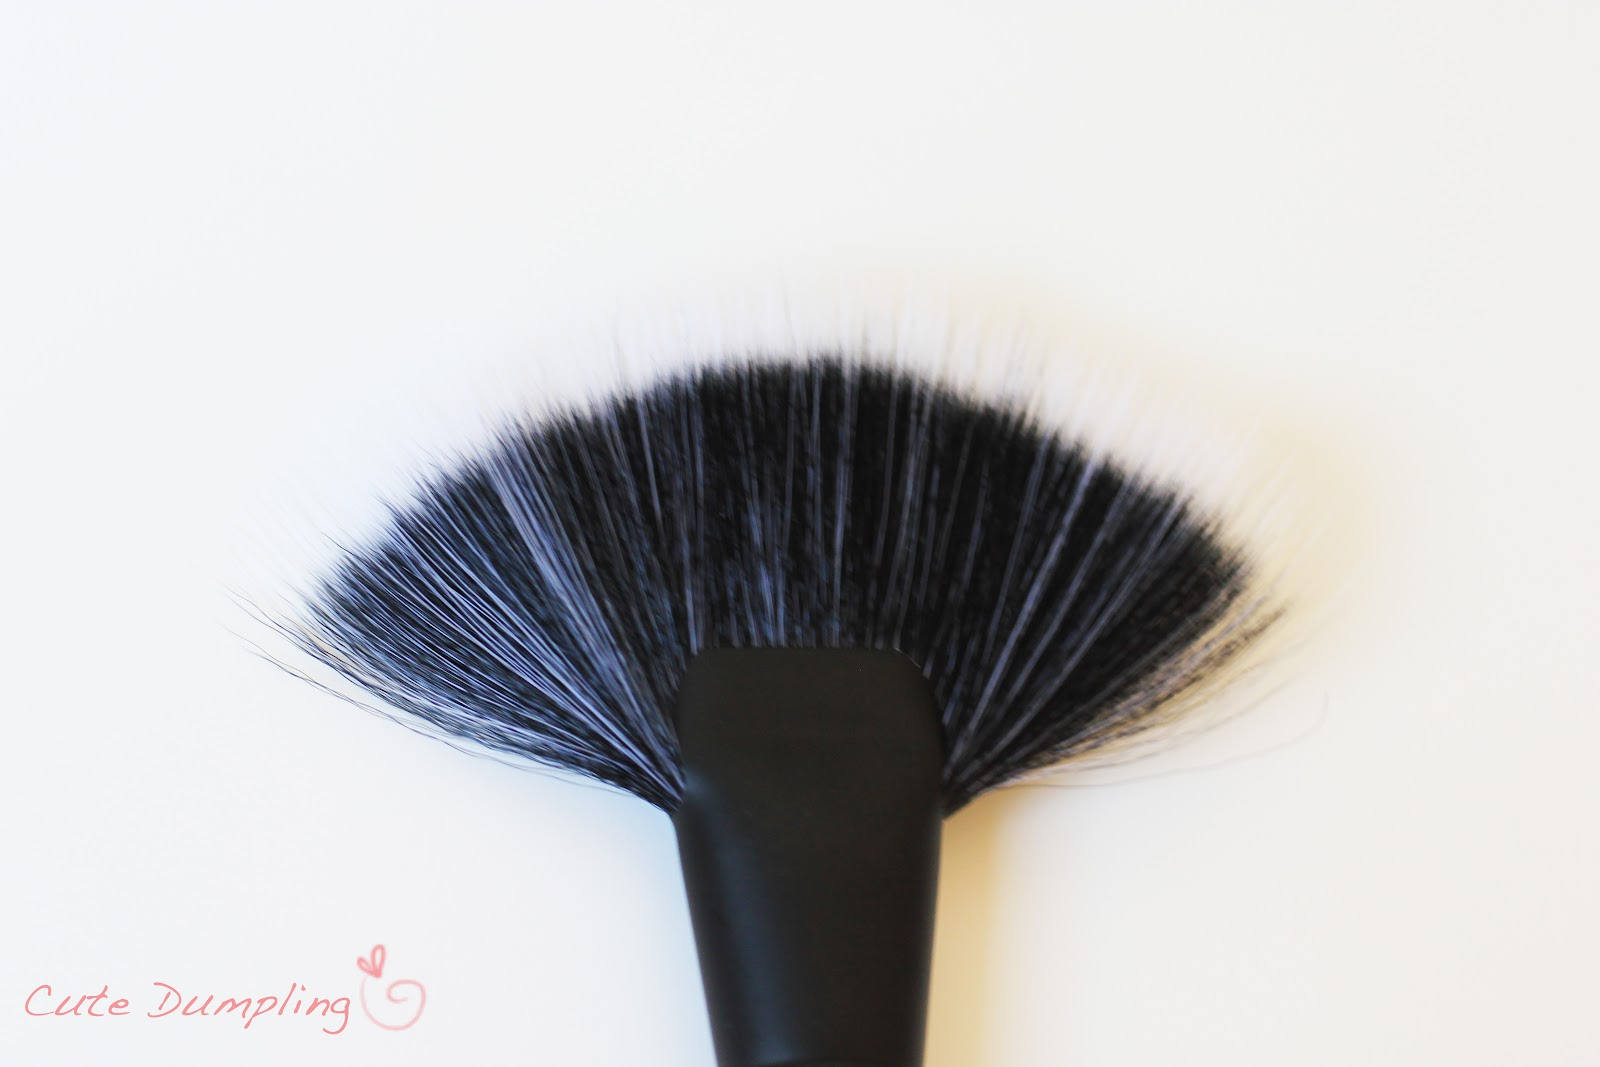 Cute Dumpling: REVIEW: Coastal Scents Brushes *PIC HEAVY*